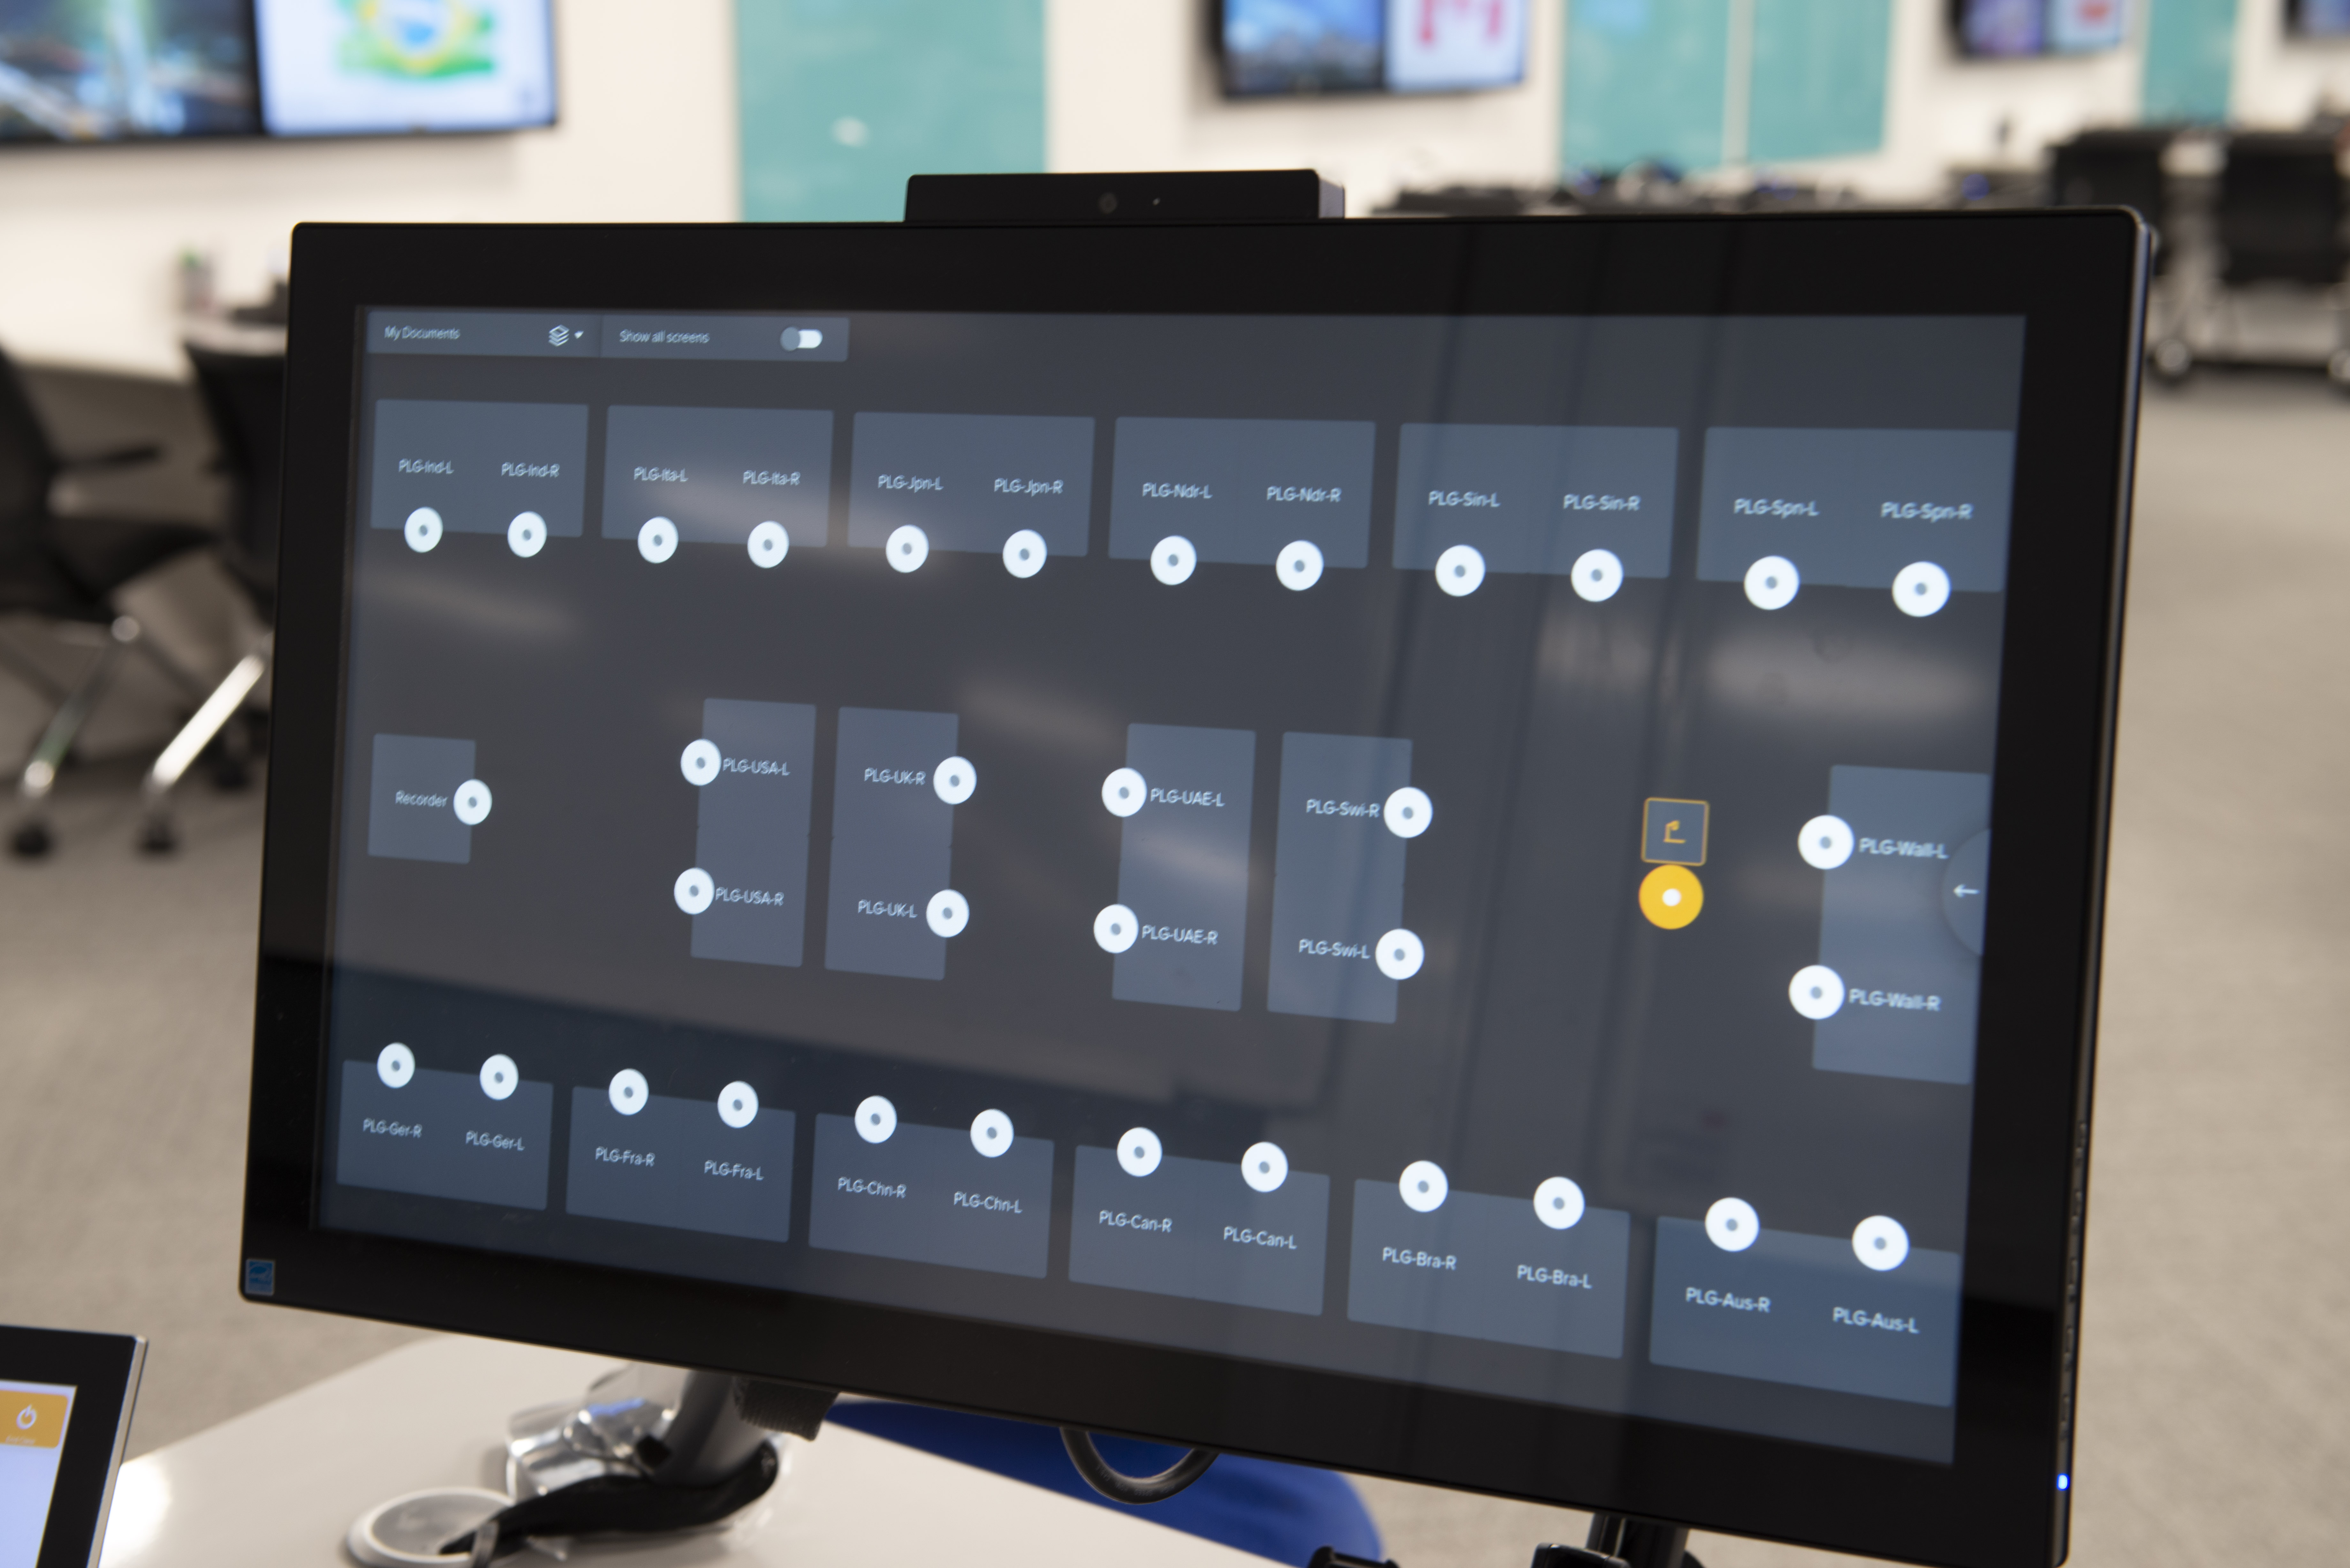 WolfVision vSolution MATRIX active learning classroom collaboration system, installed at London Business School